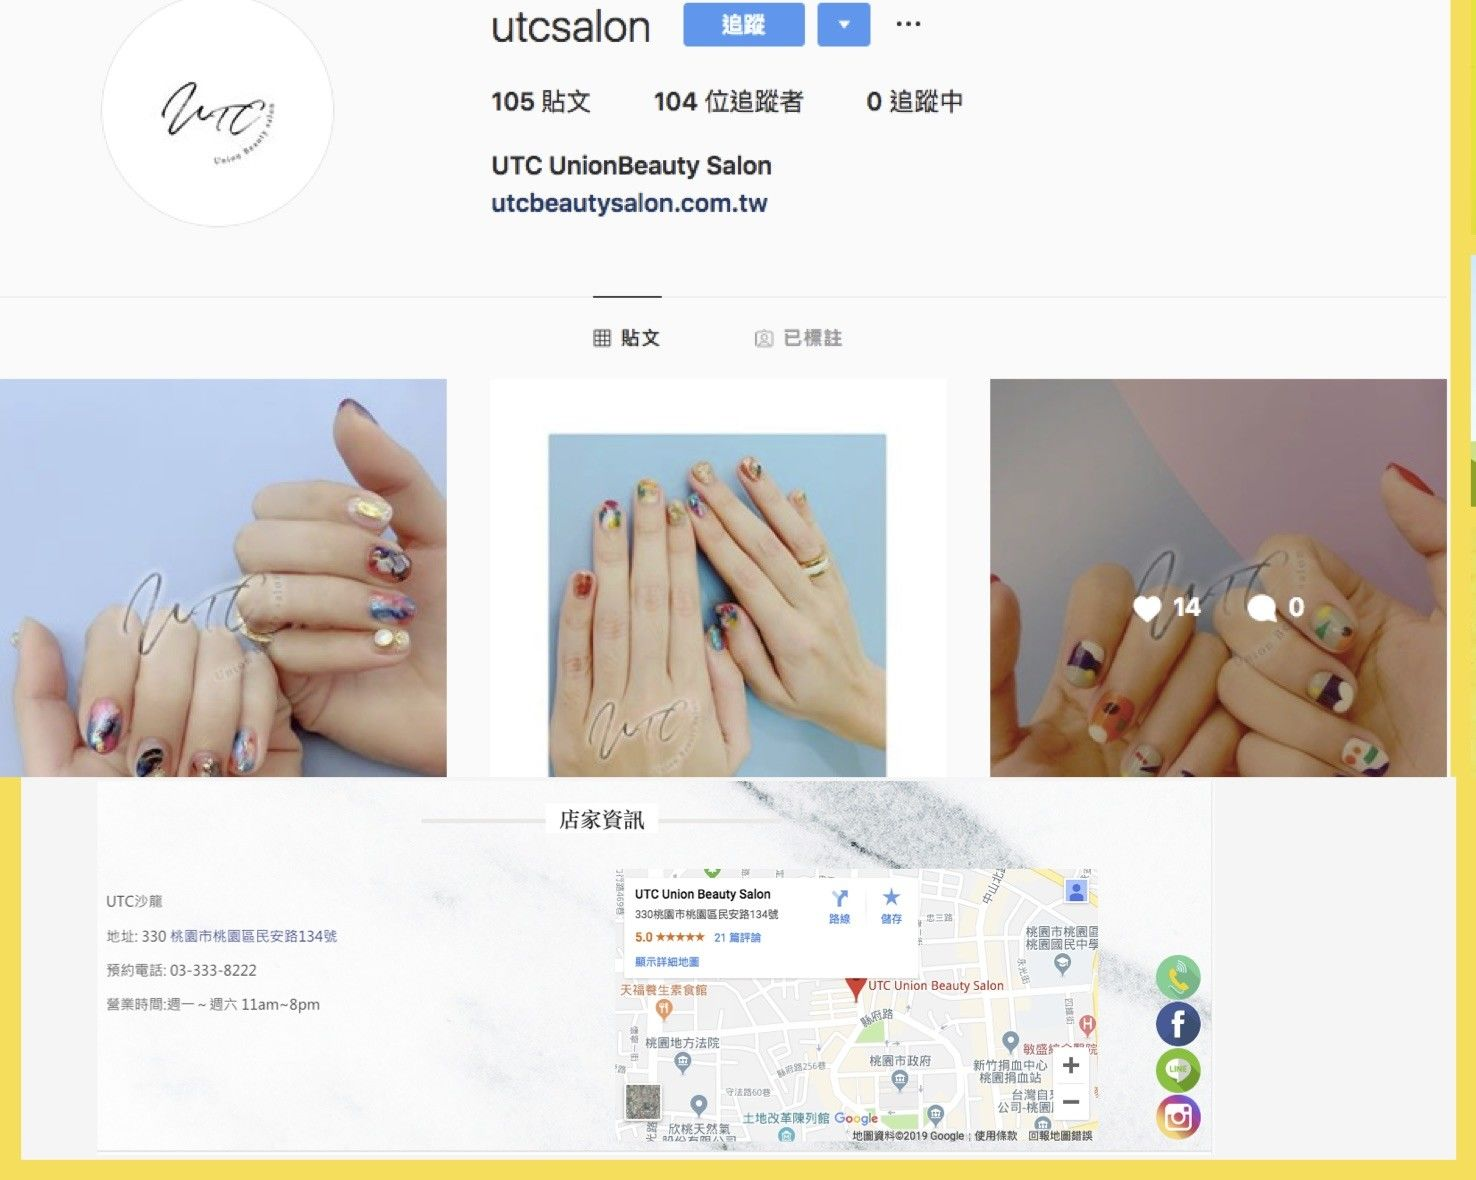 SEO網站成功案例-UTC Union Beauty Salon-社群